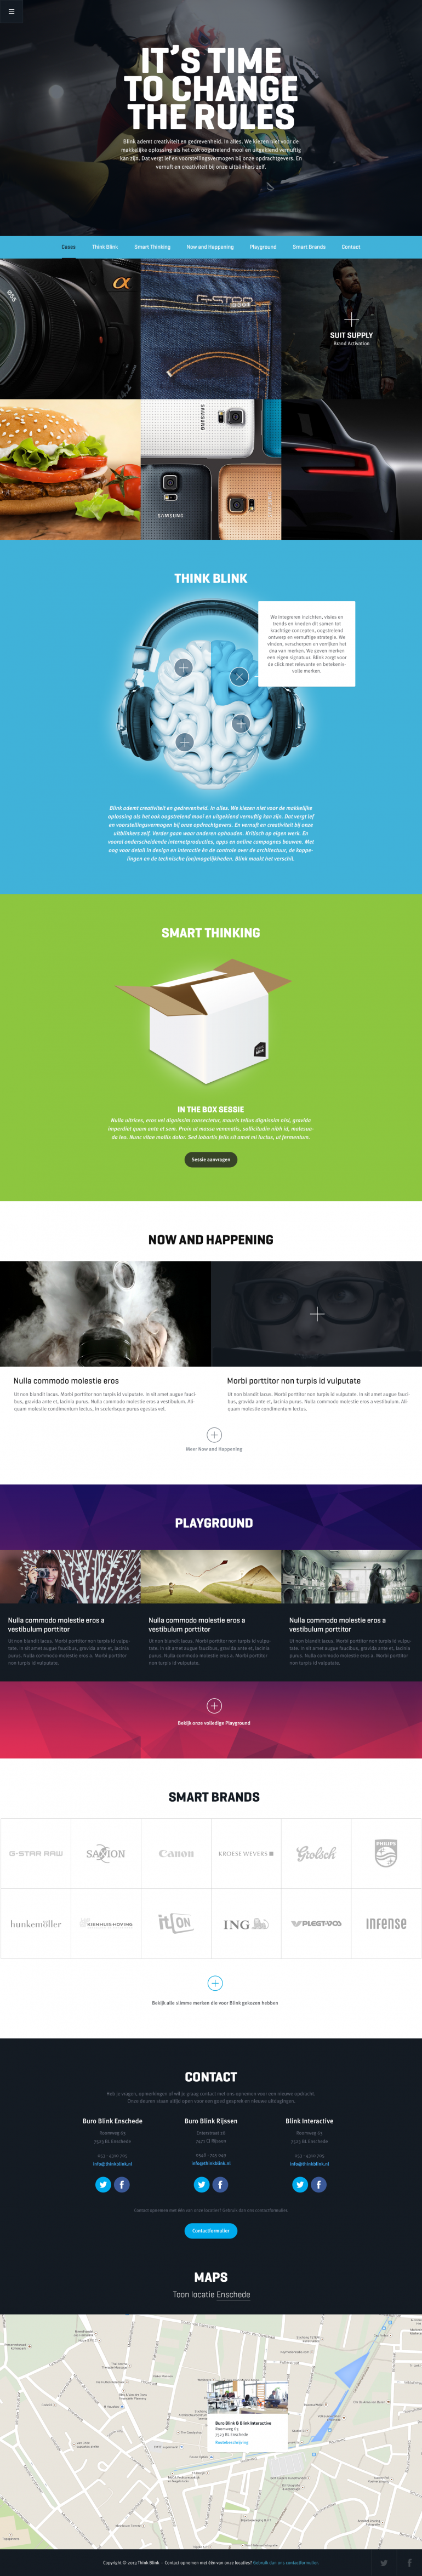 Think Blink Homepage by Bart Ebbekink